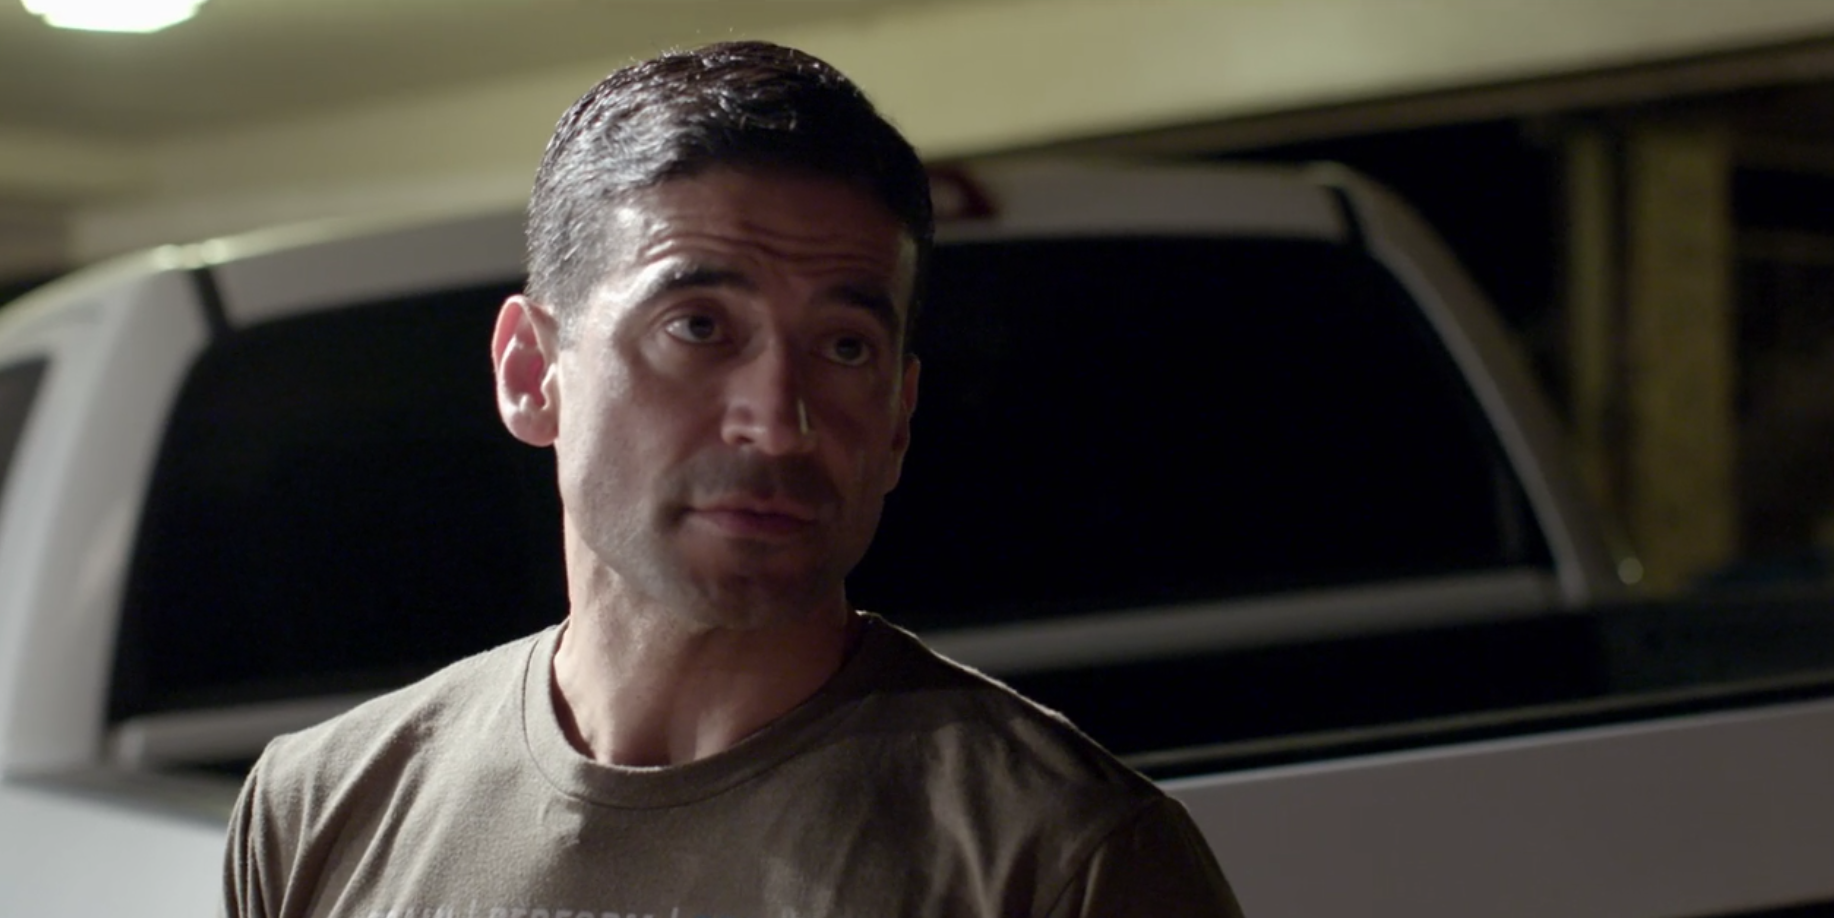 Nico LaHood Appears on New Netflix Documentary About His